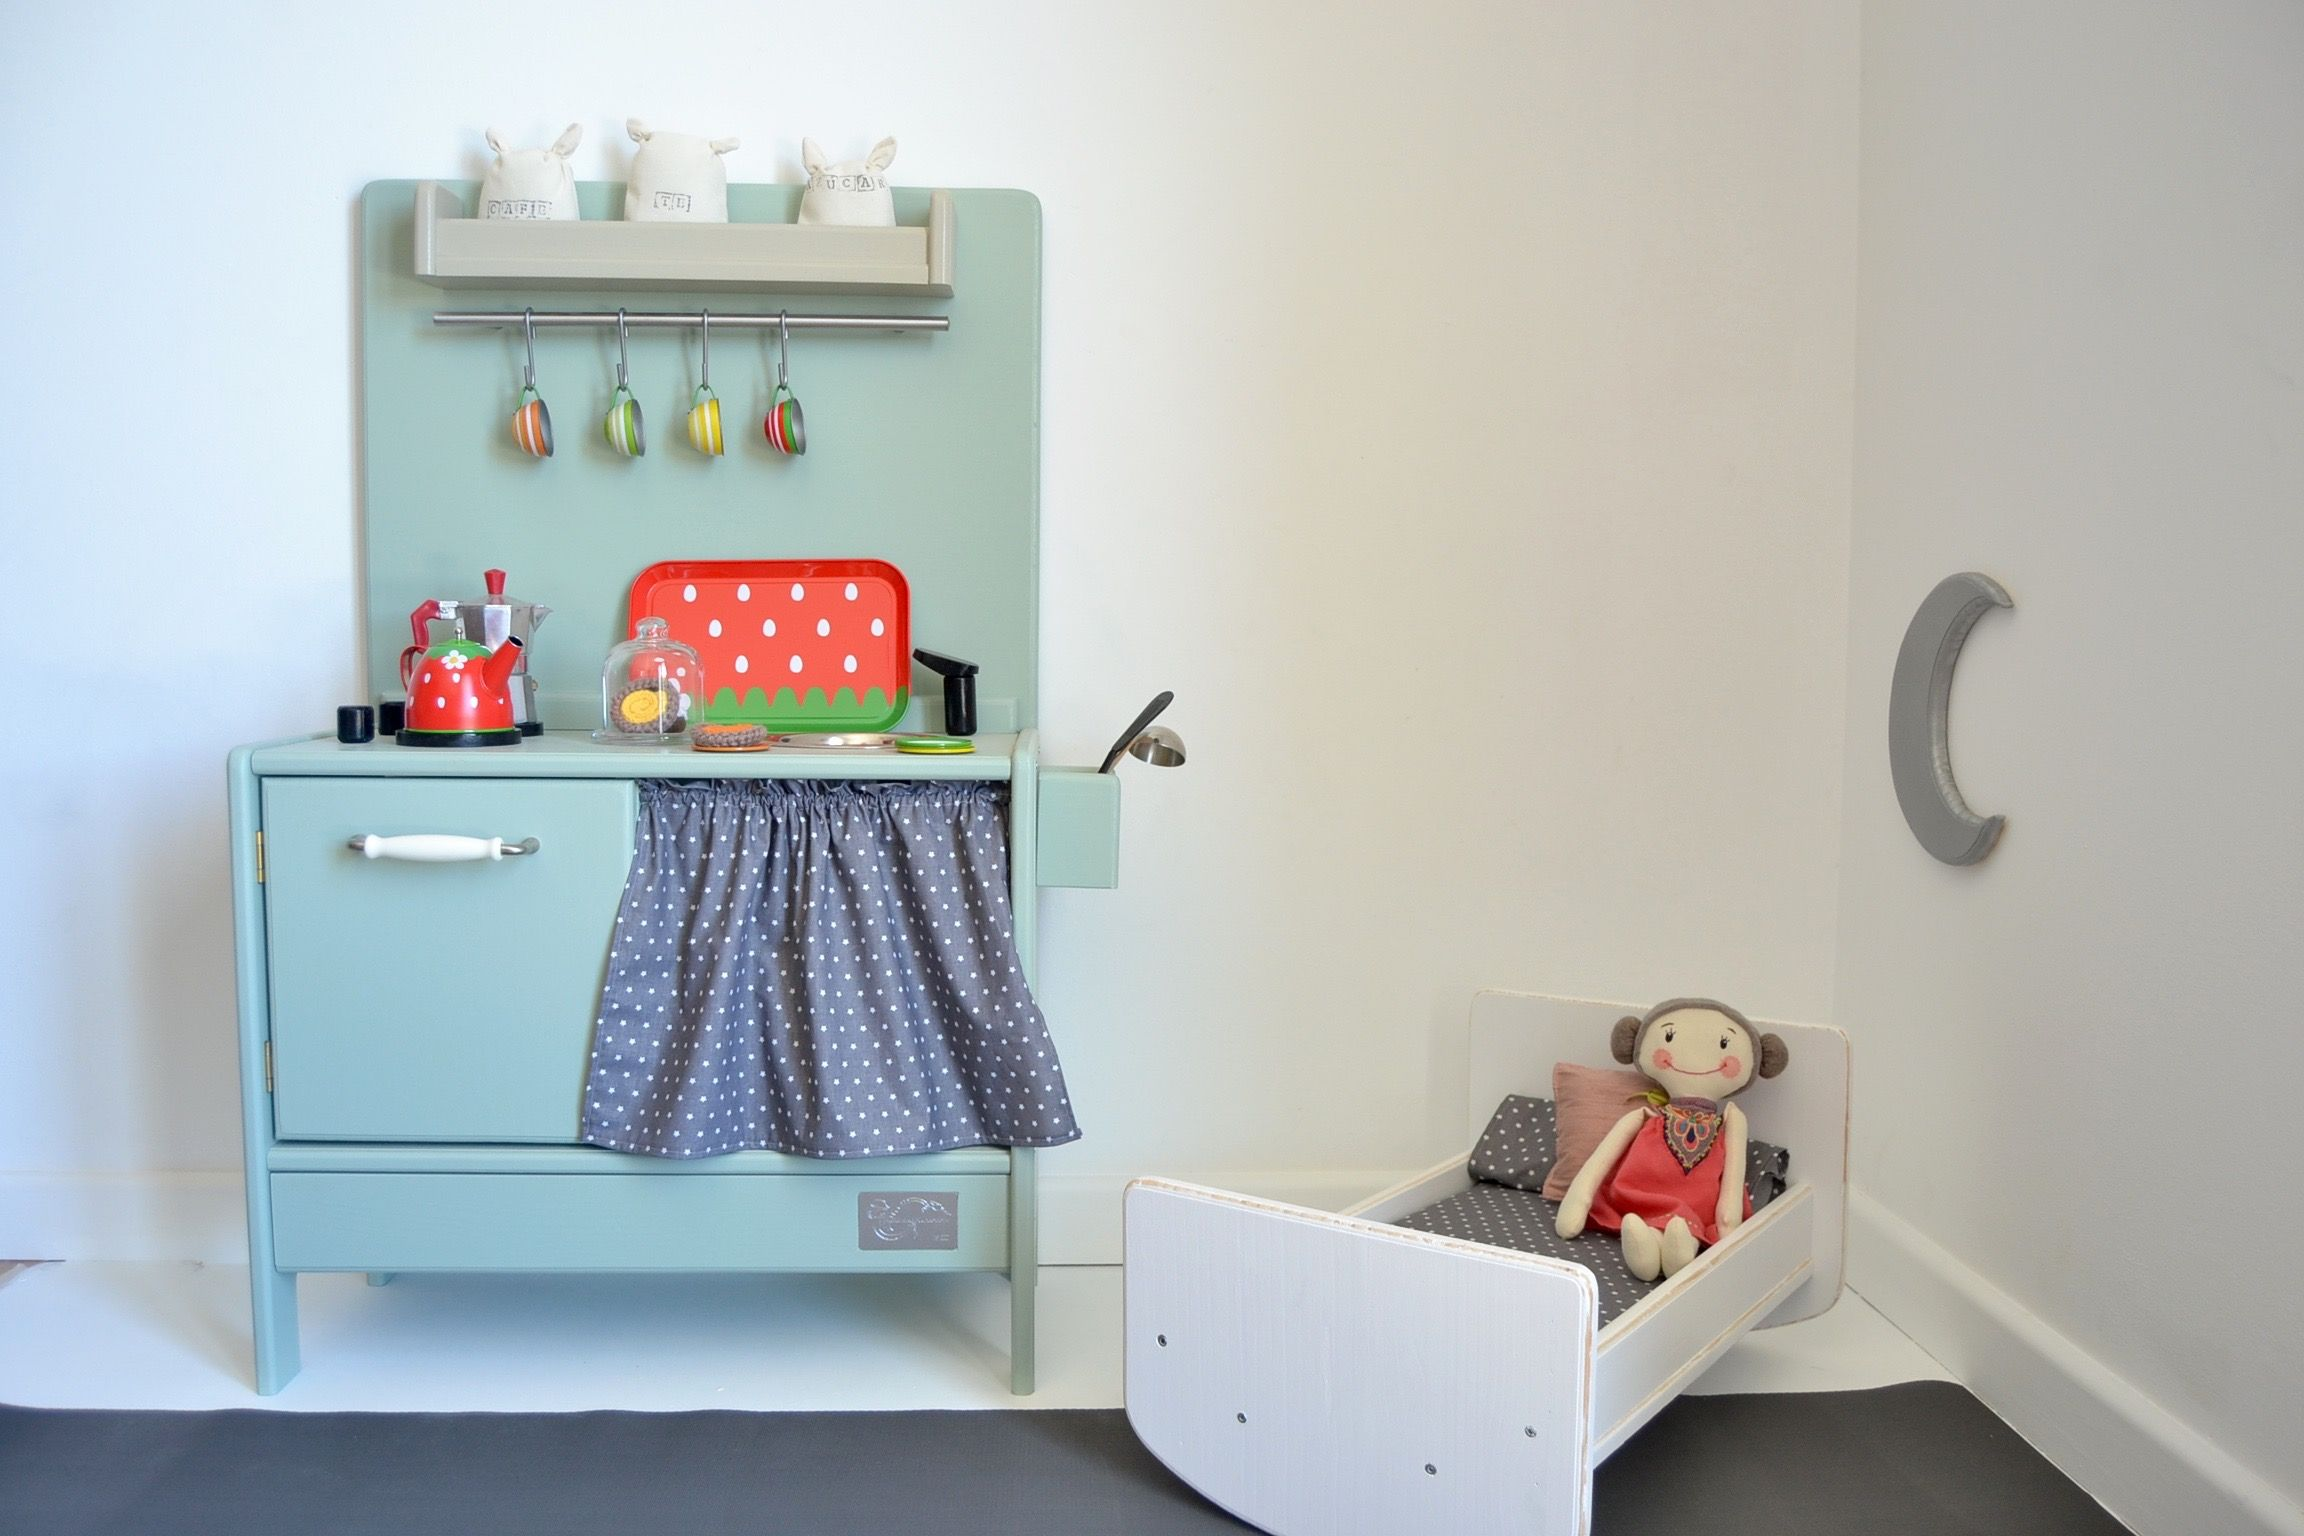 Wooden toy kitchen and crib #woodentoy #woodenkitchen #woodencrib ...